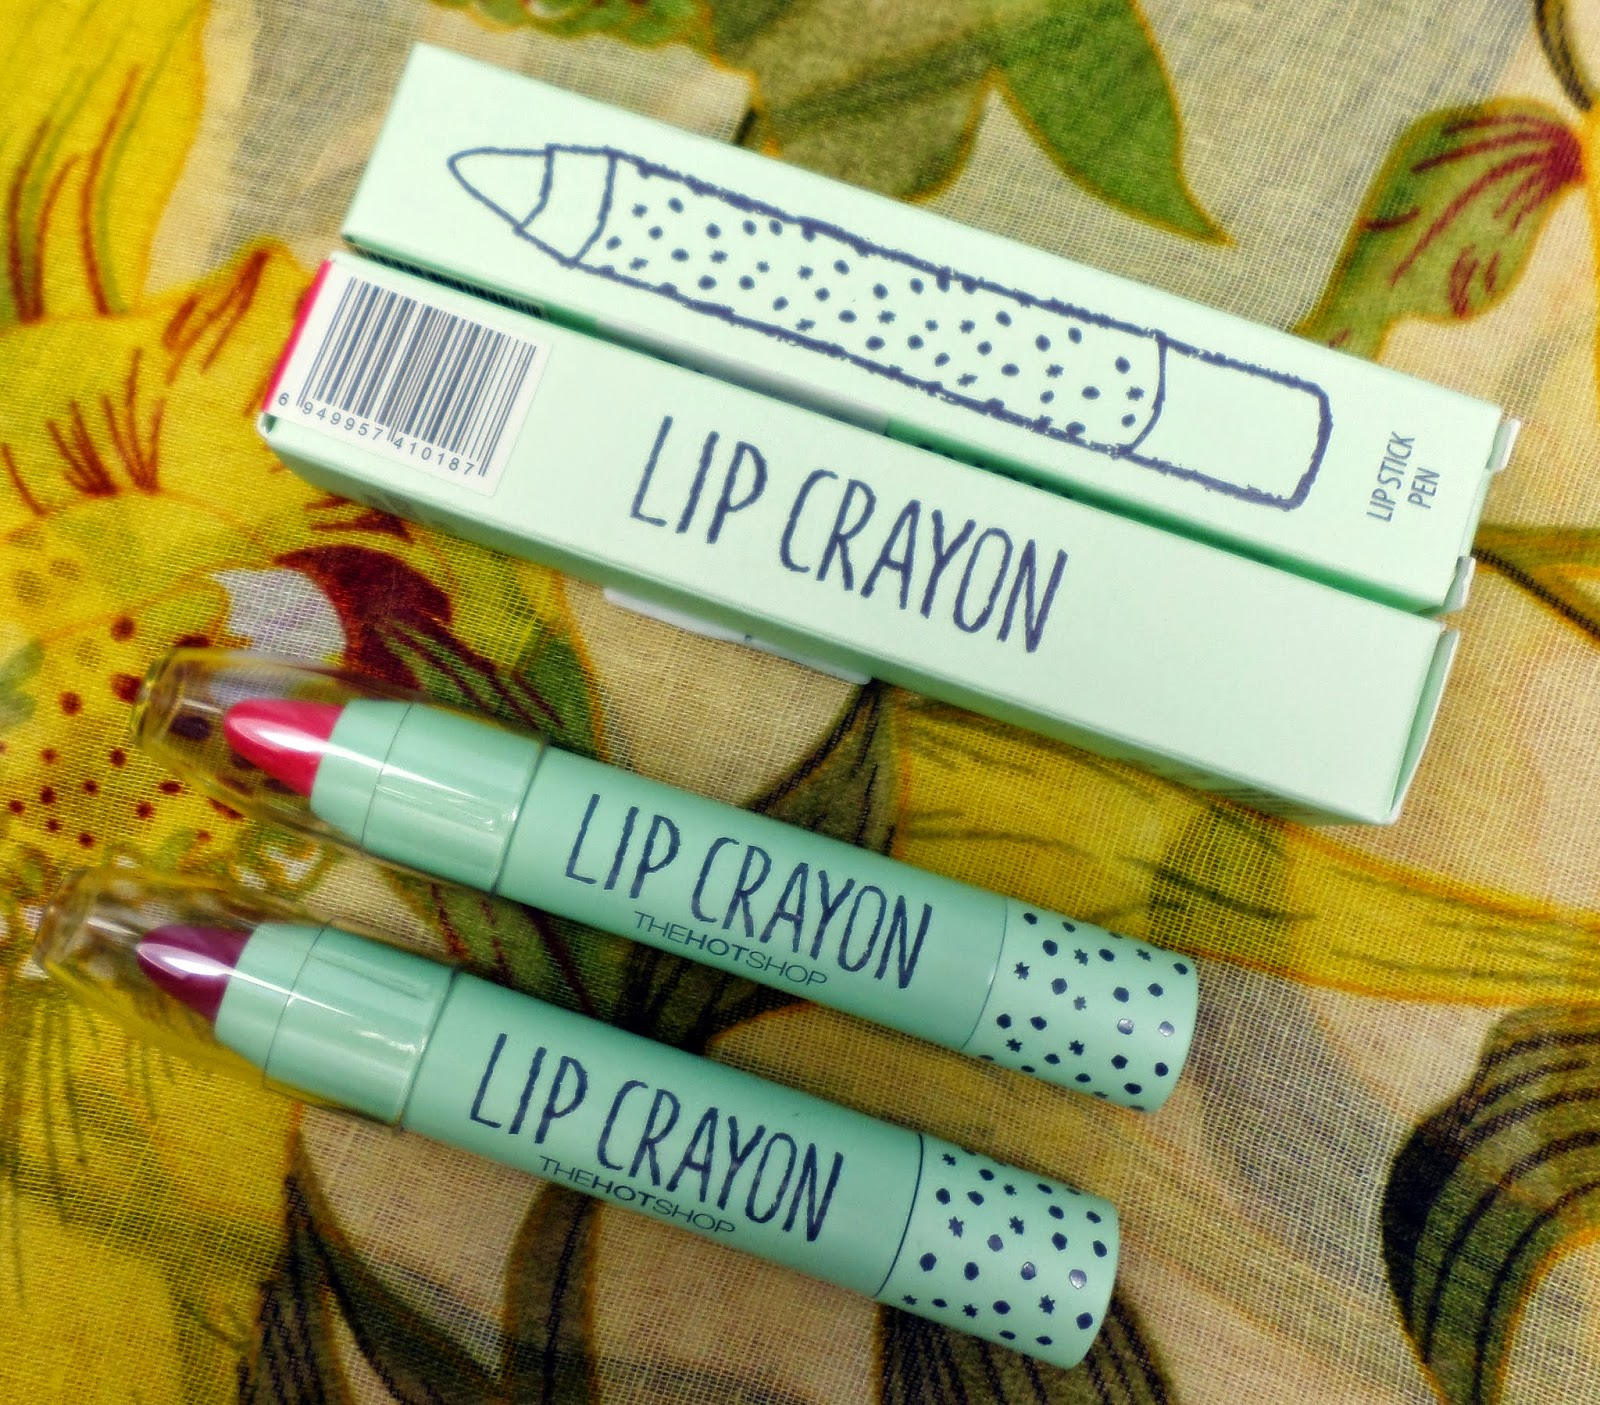 Review: Born Pretty Lip Crayons Shades 01 & 12